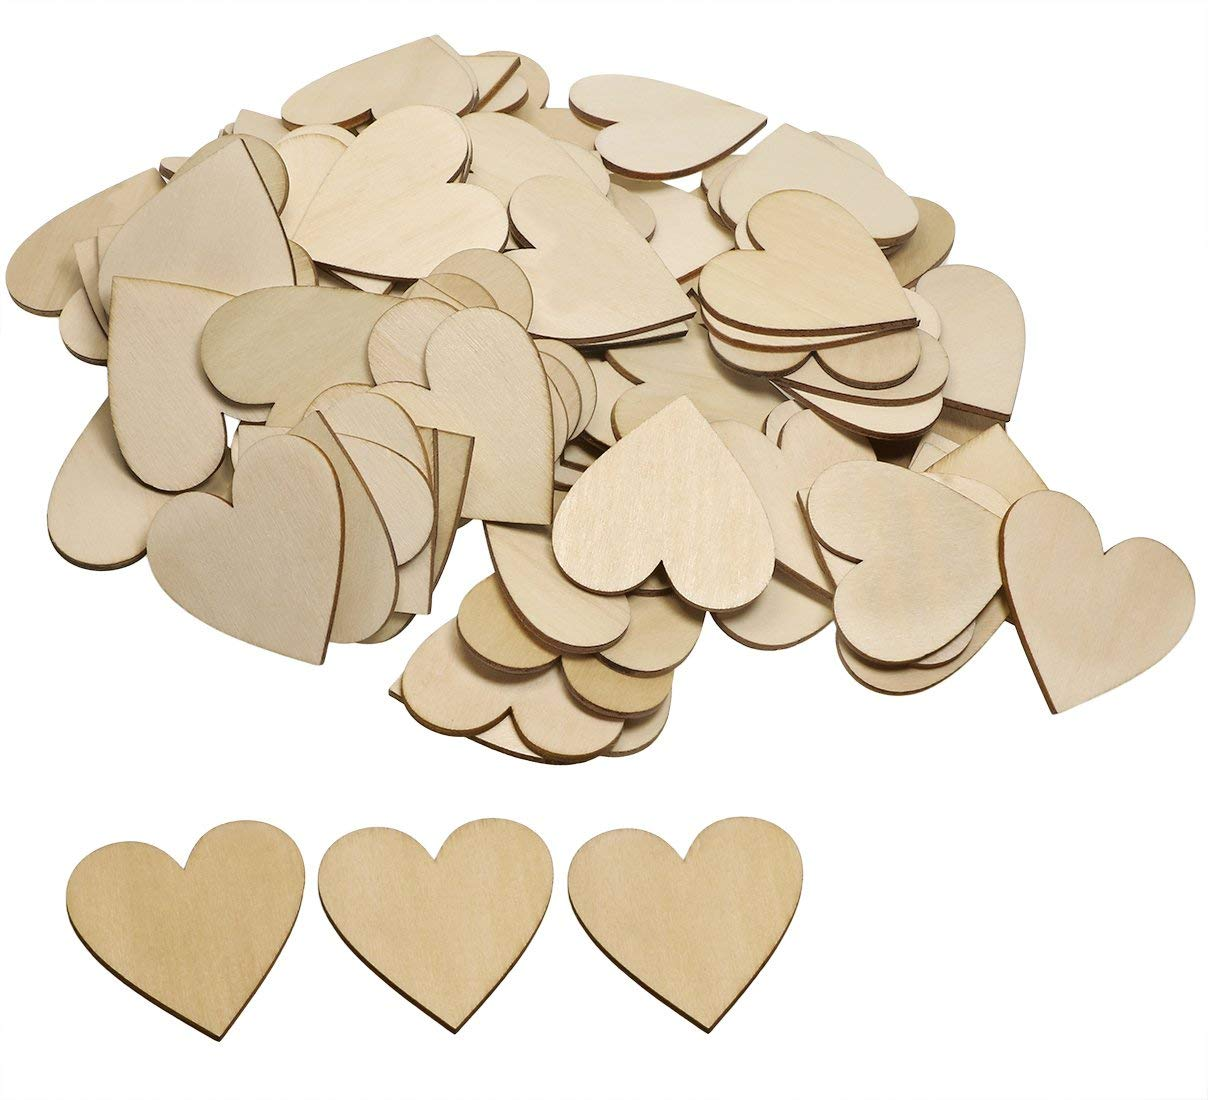 Shapenty 2 Inch/50MM Unfinished Blank Name Tag Wooden Heart Shaped Slices Discs DIY Craft Pieces for Wedding Ornaments Christmas Party Embellishment, 100PCS (Without Hole)